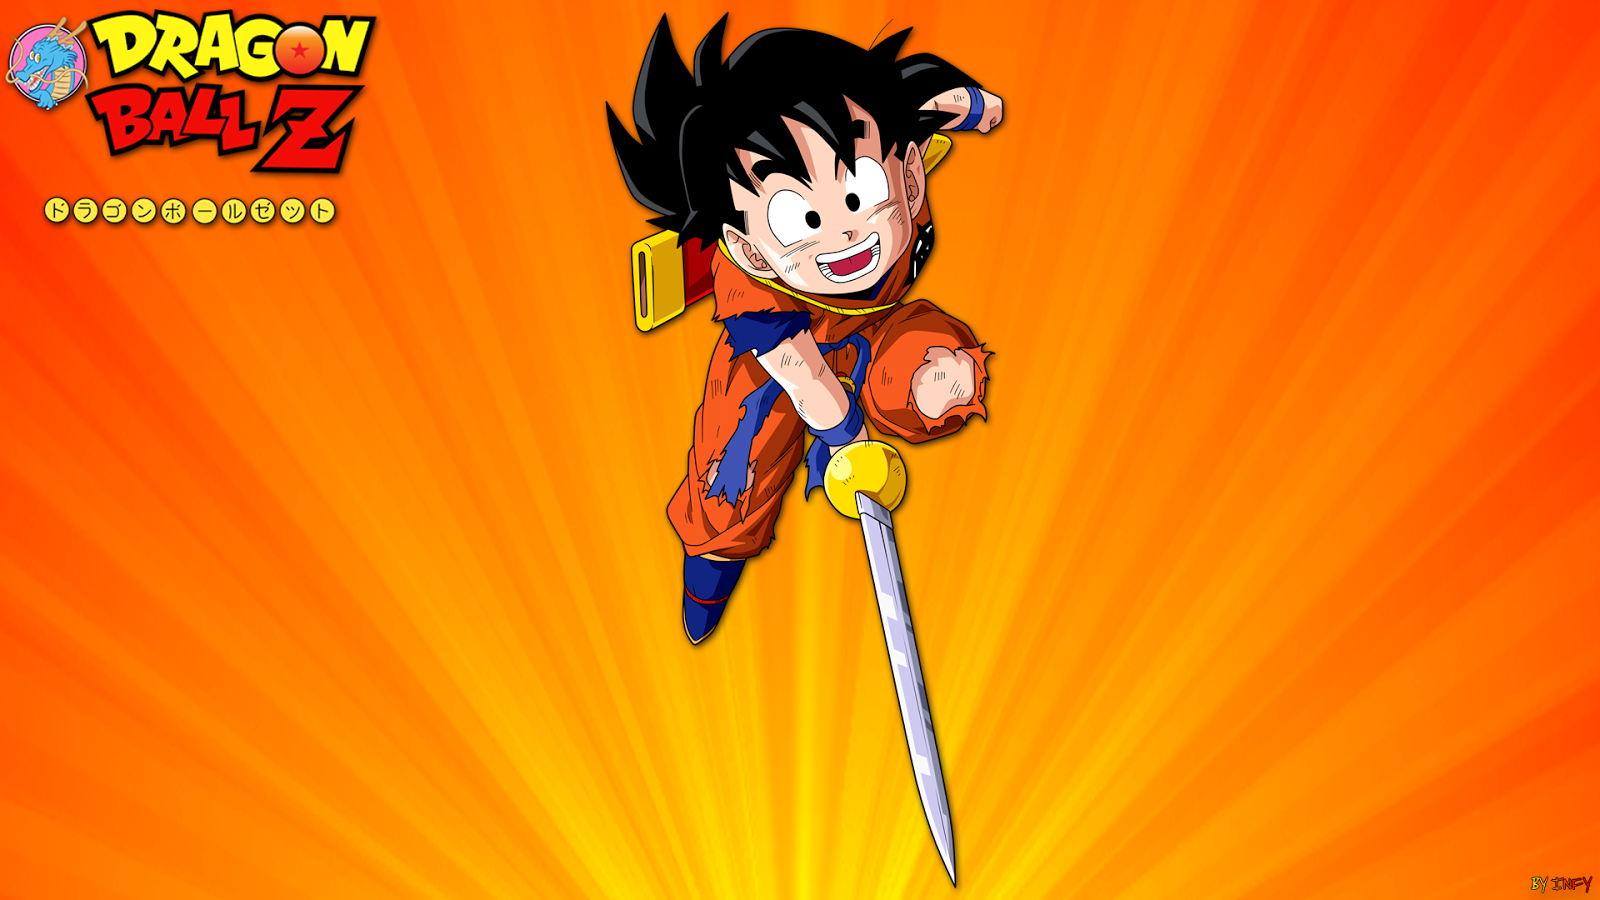 Download Dragon Ball, SonGoku Full HD Wallpapers - 3D HD ...